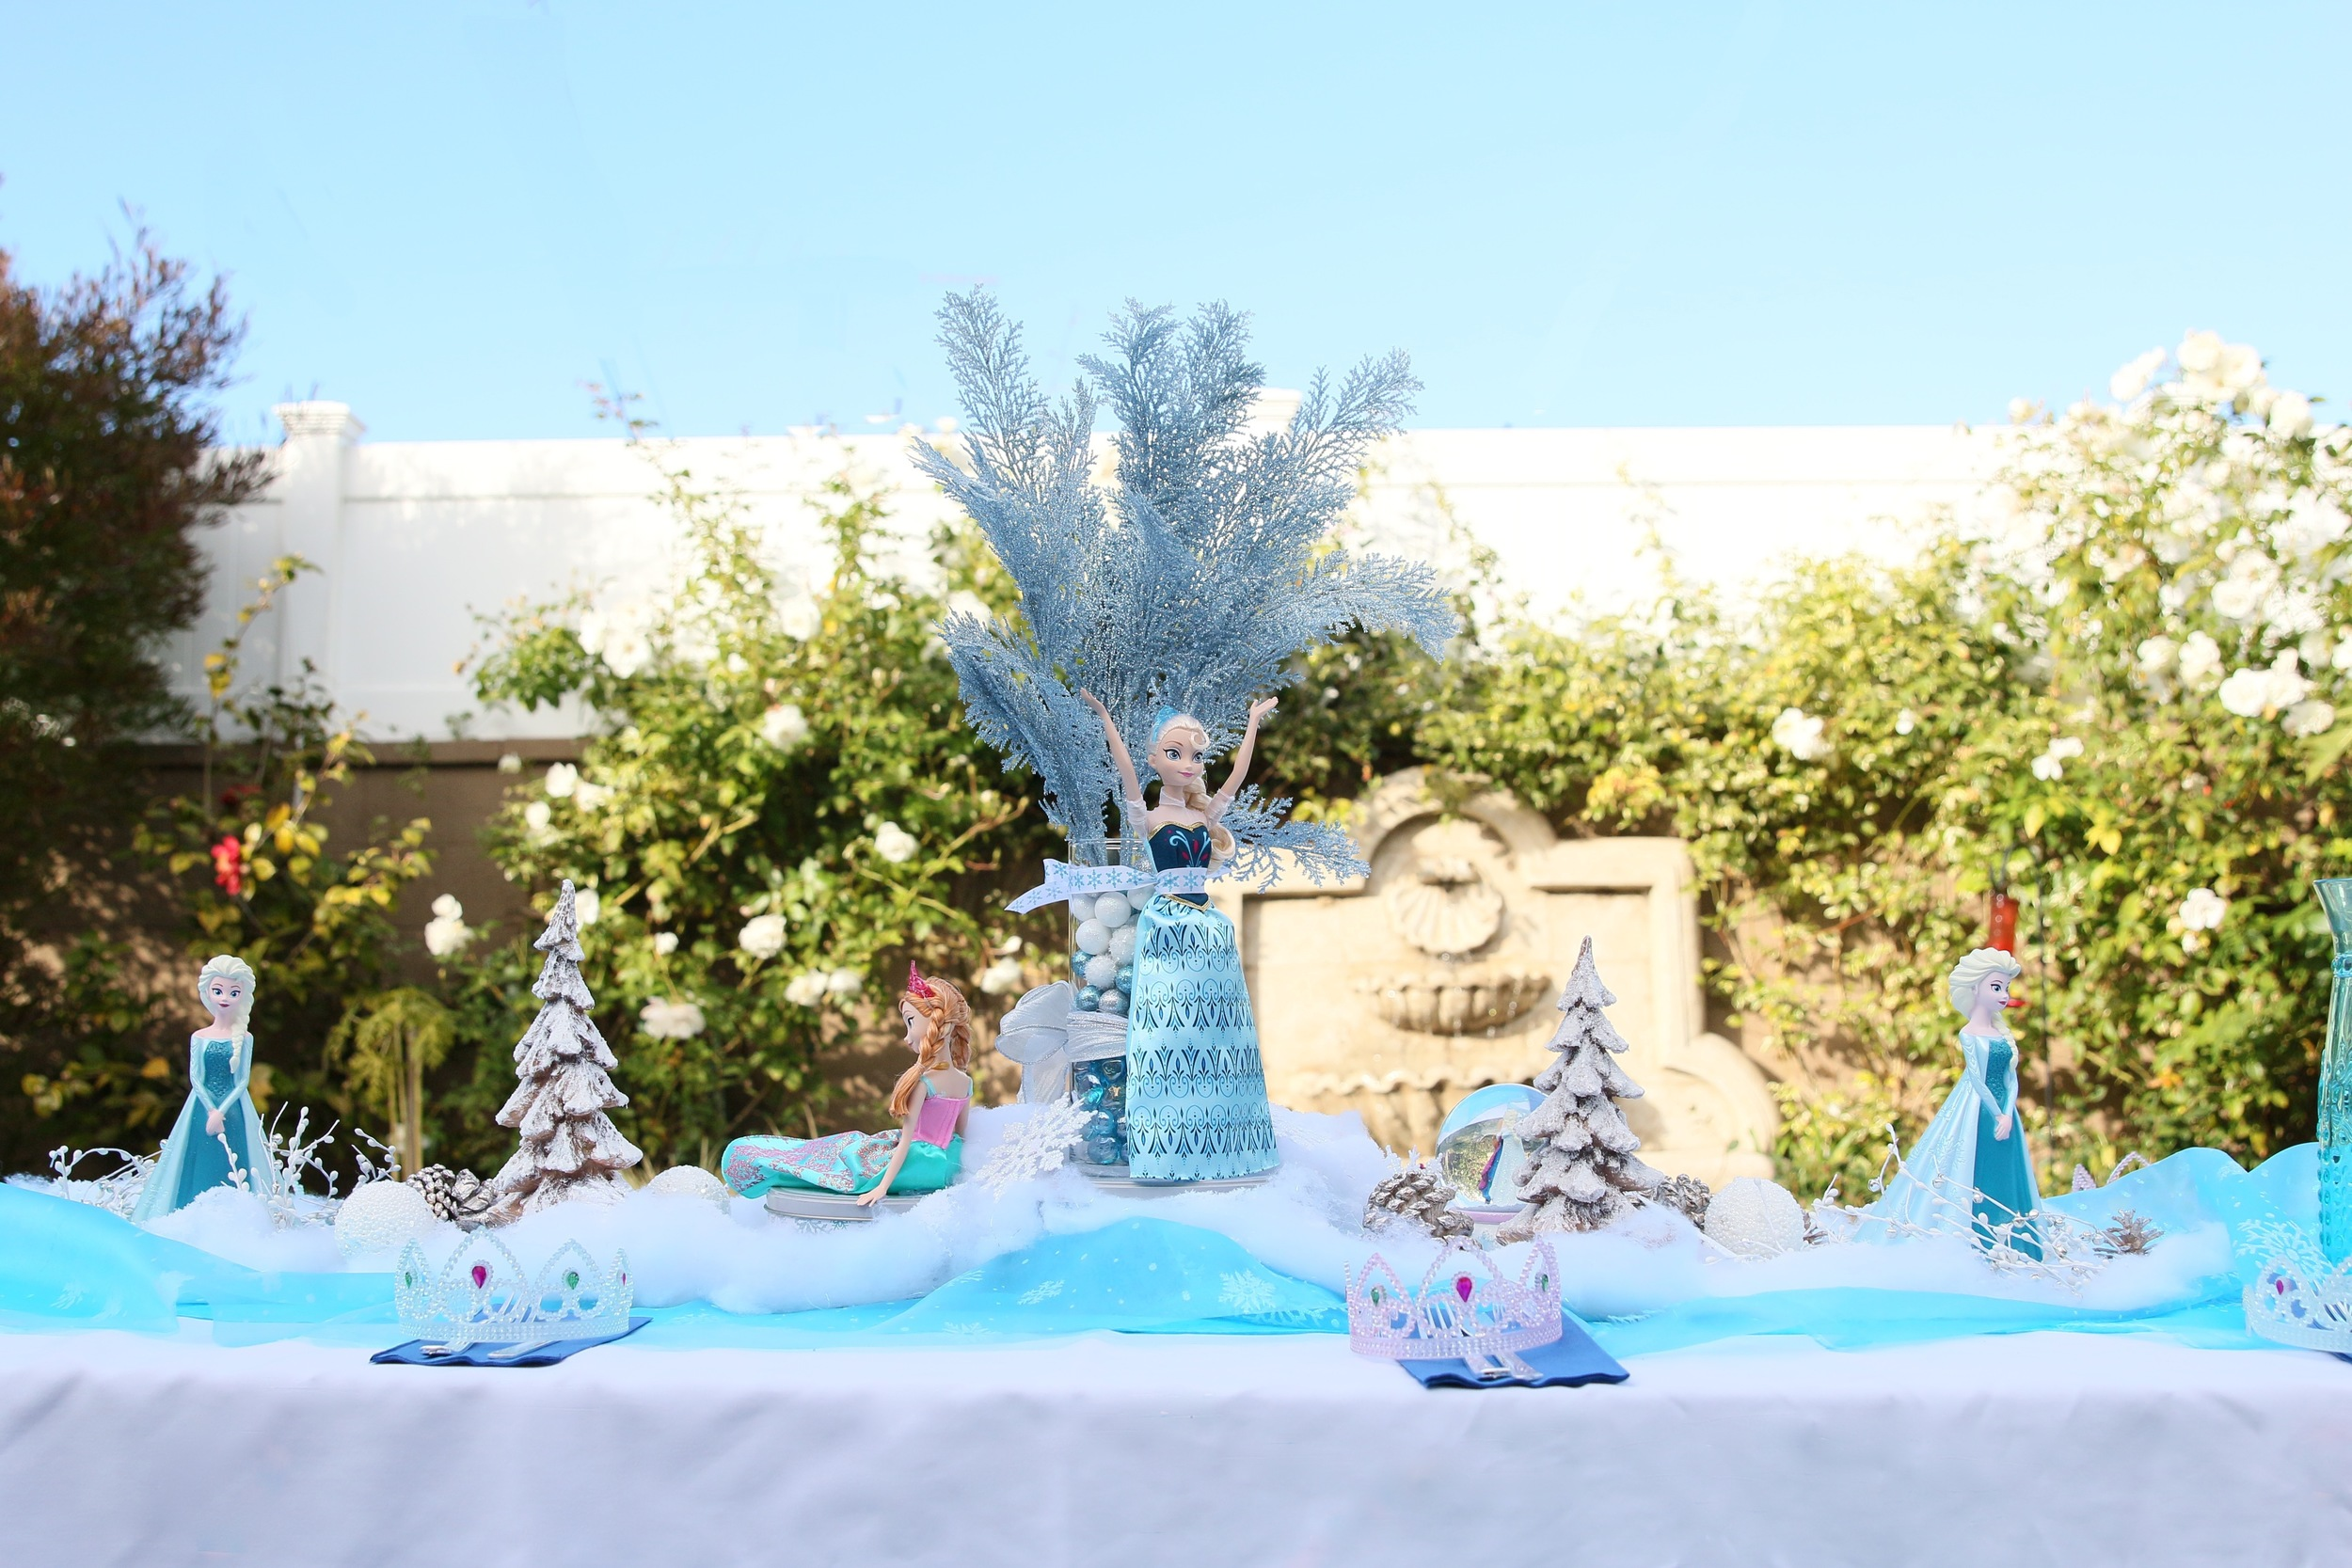 Everything you need for a FROZEN Birthday Party FOR RENT! @inJOYtheParty